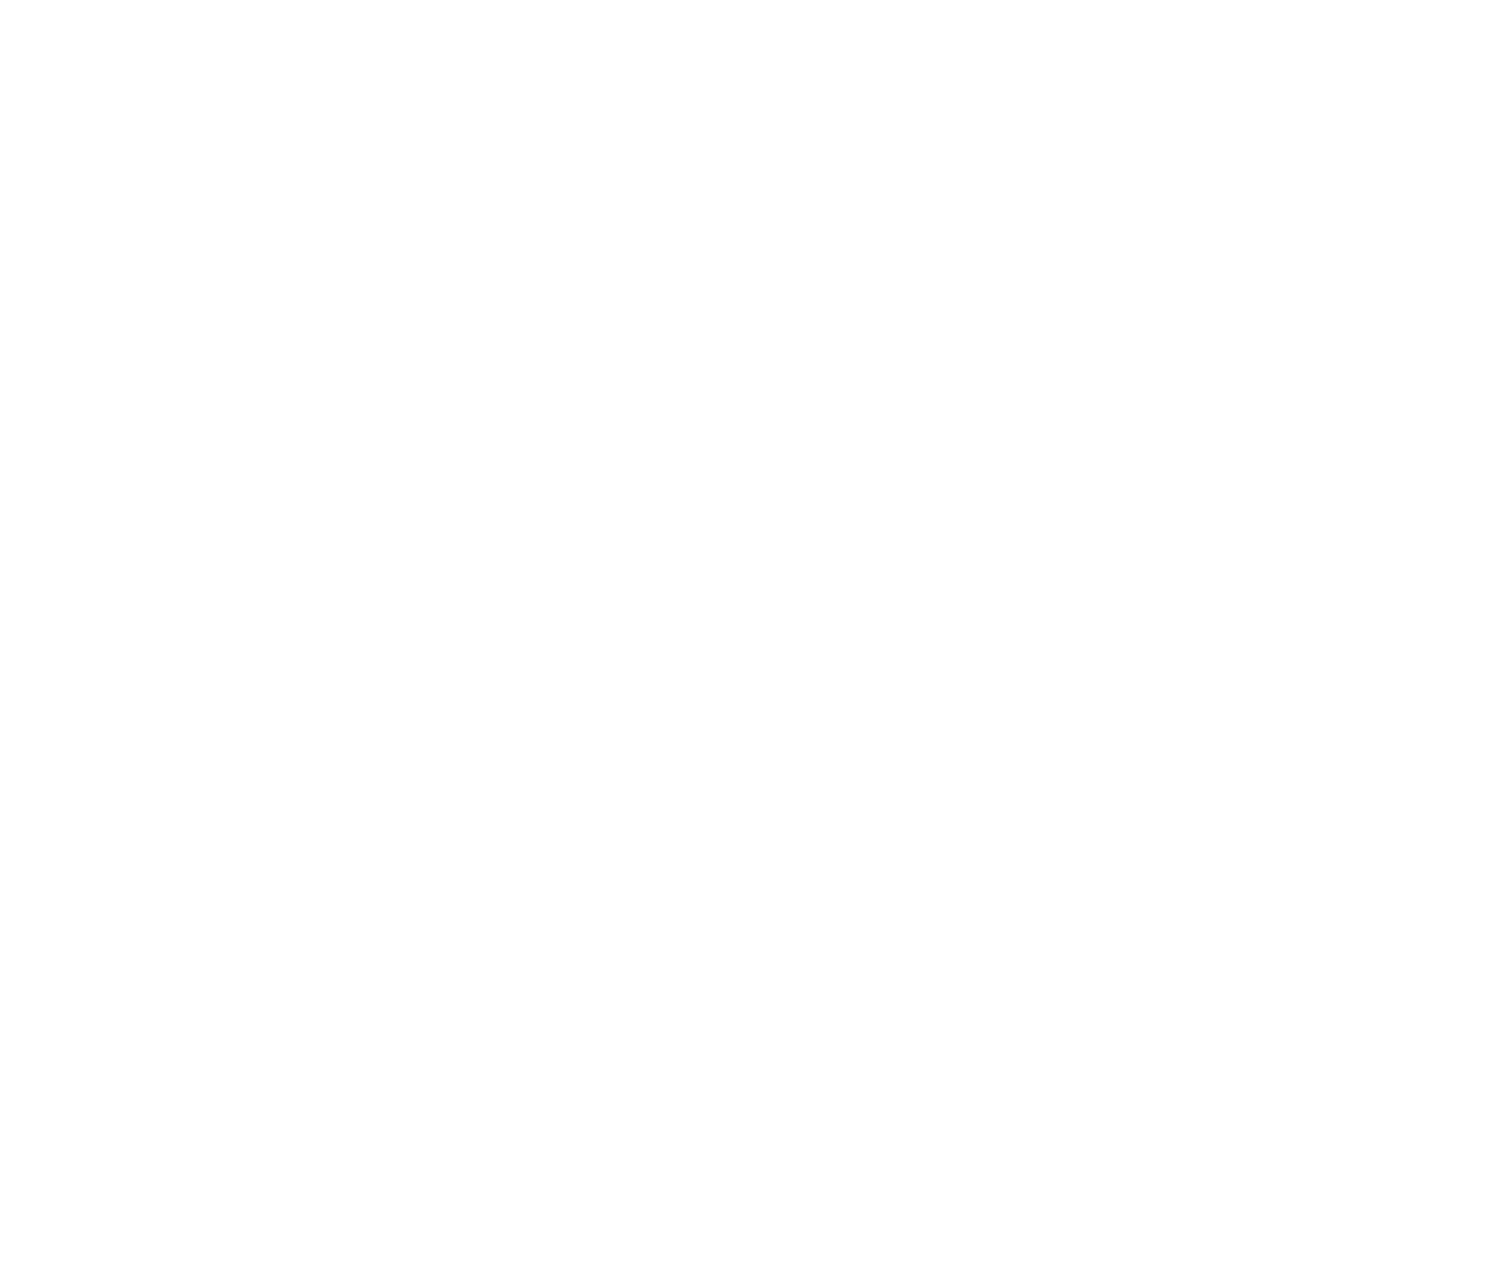 Spin Street House